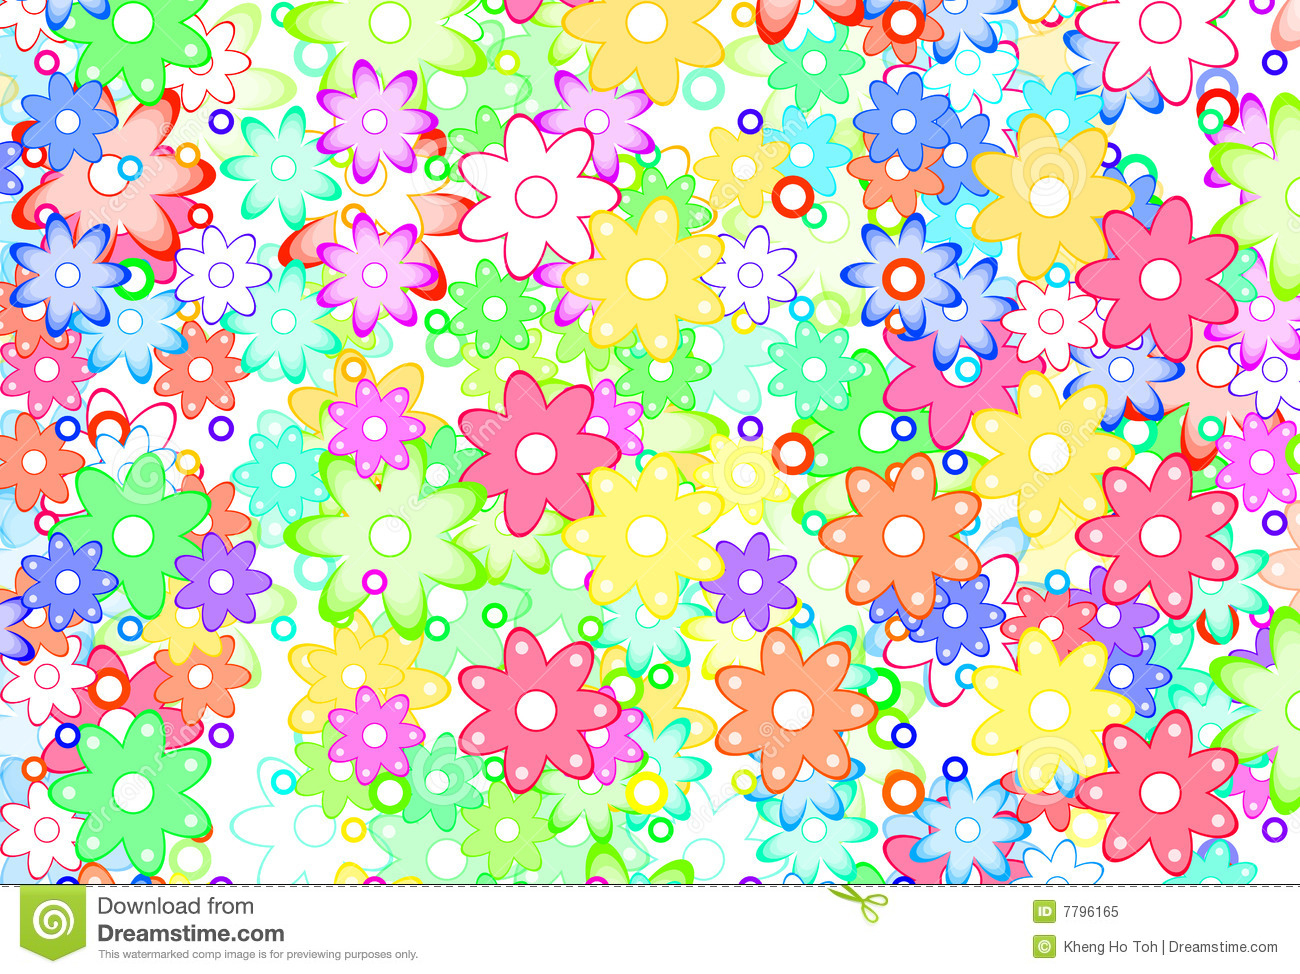 Cute Spring Flower Backgrounds Images Pictures   Becuo 1300x974